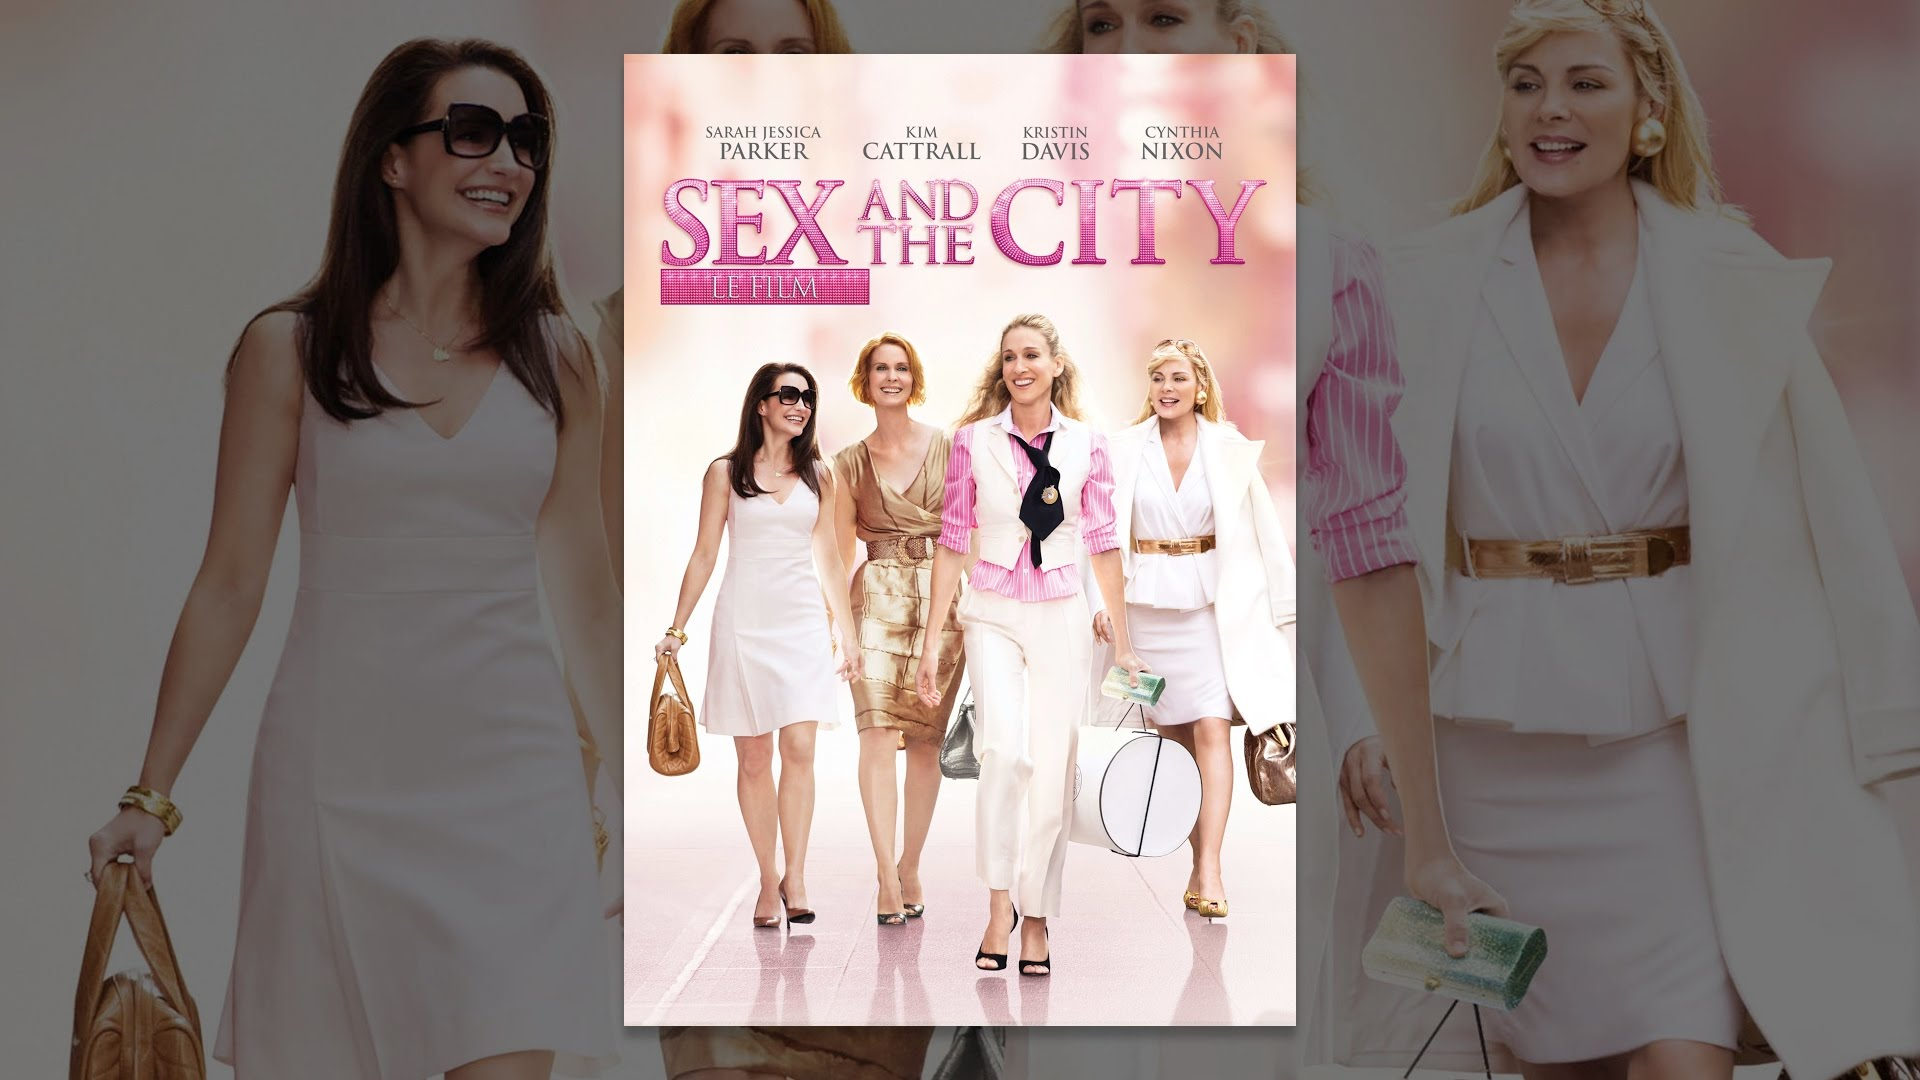 Sex and the city 3 movie release date in Melbourne